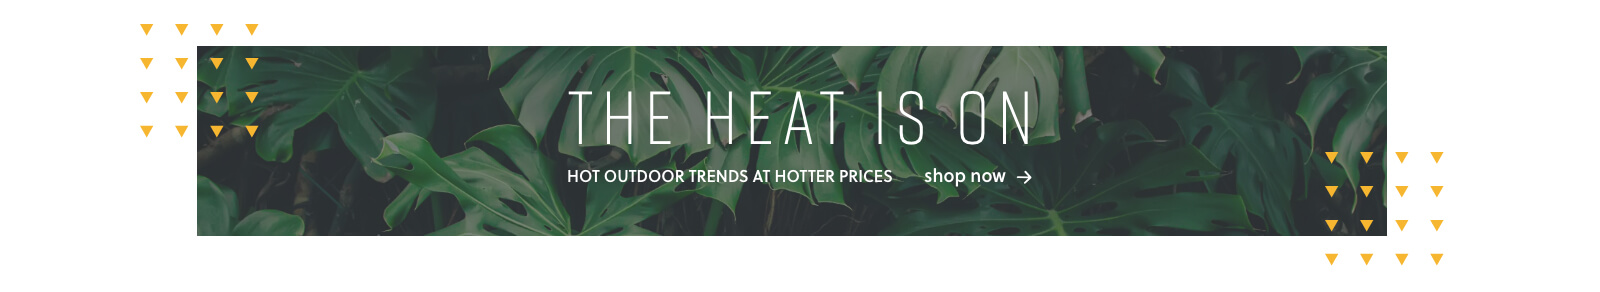 Hot Outdoor Trends